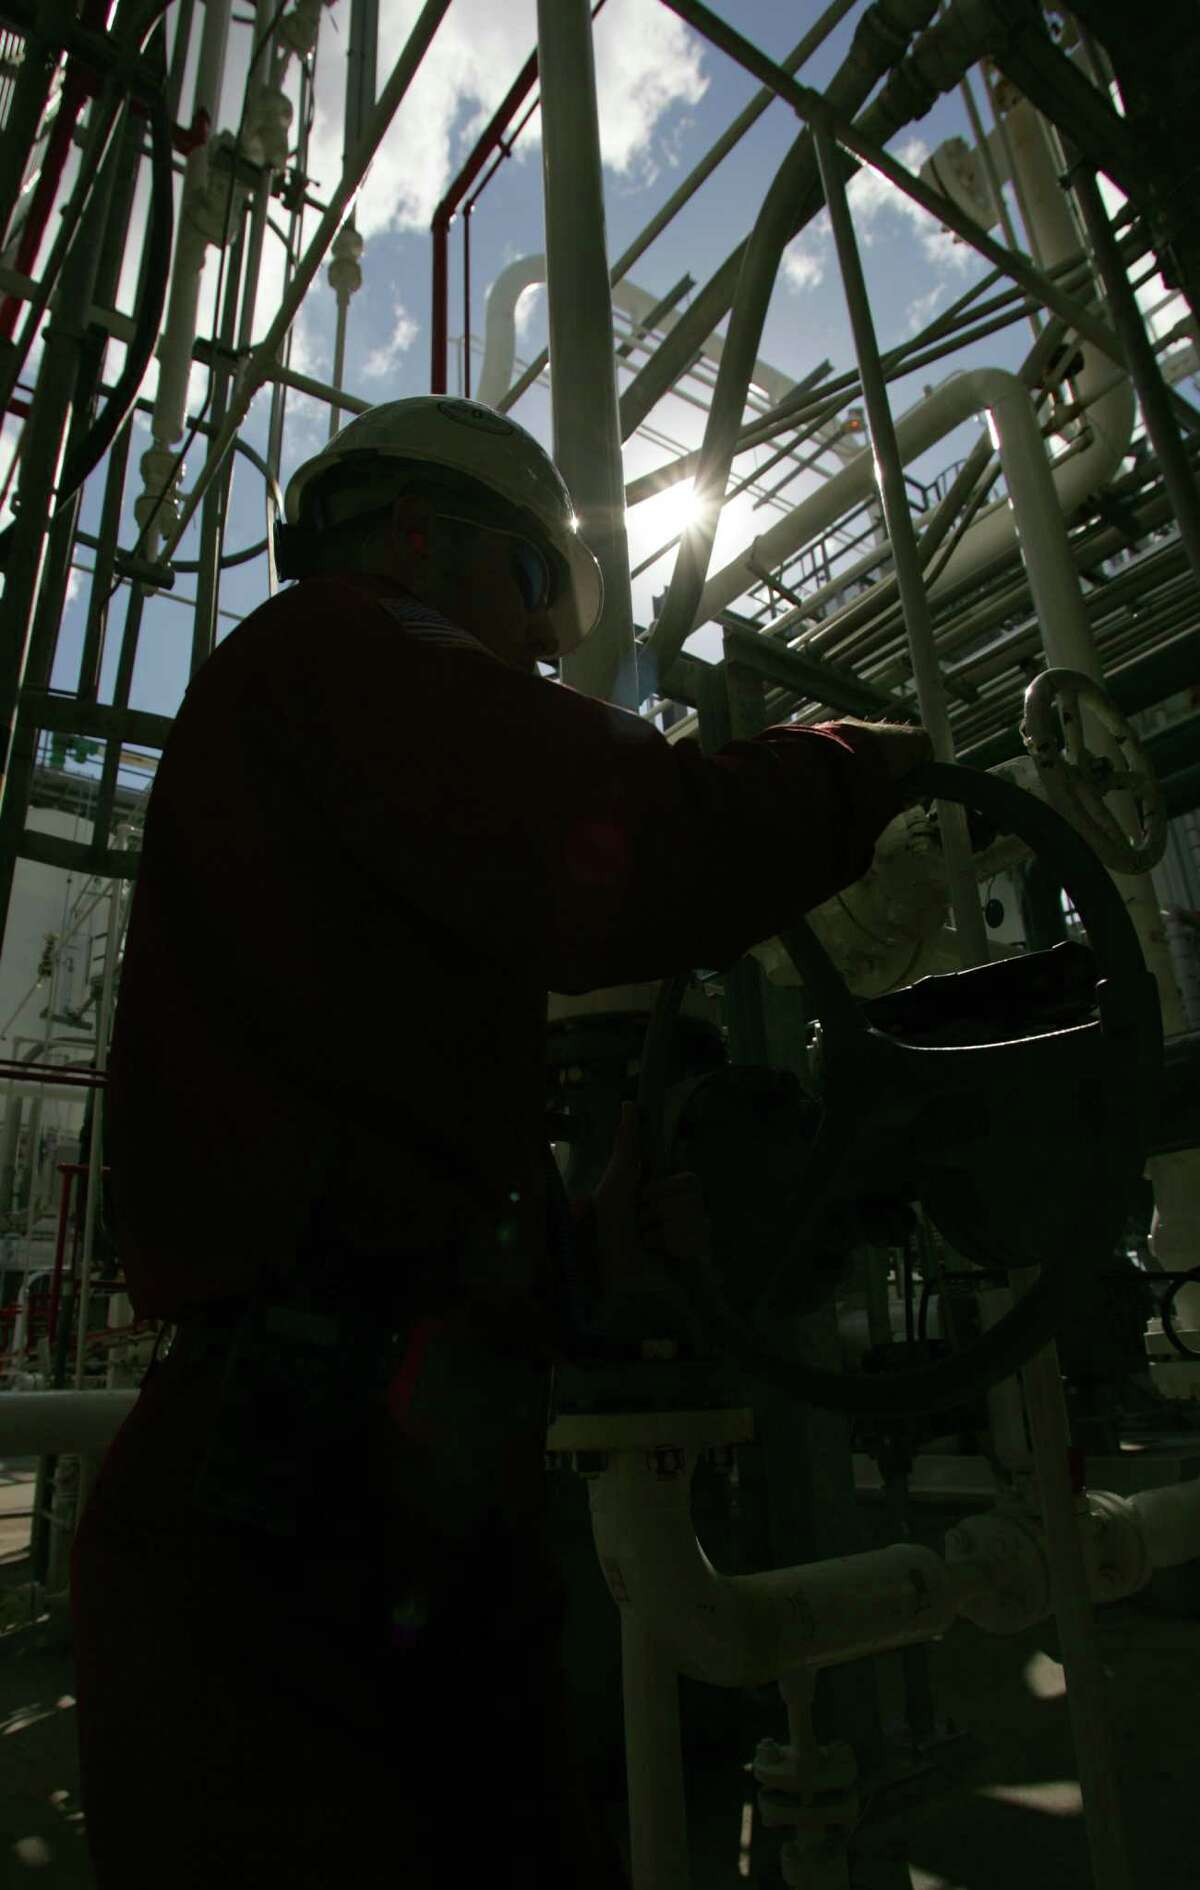 A LyondellBasell worker makes a valve adjustment in Pasadena. LyondellBasell recently completed the expansion of a Channelview plant.